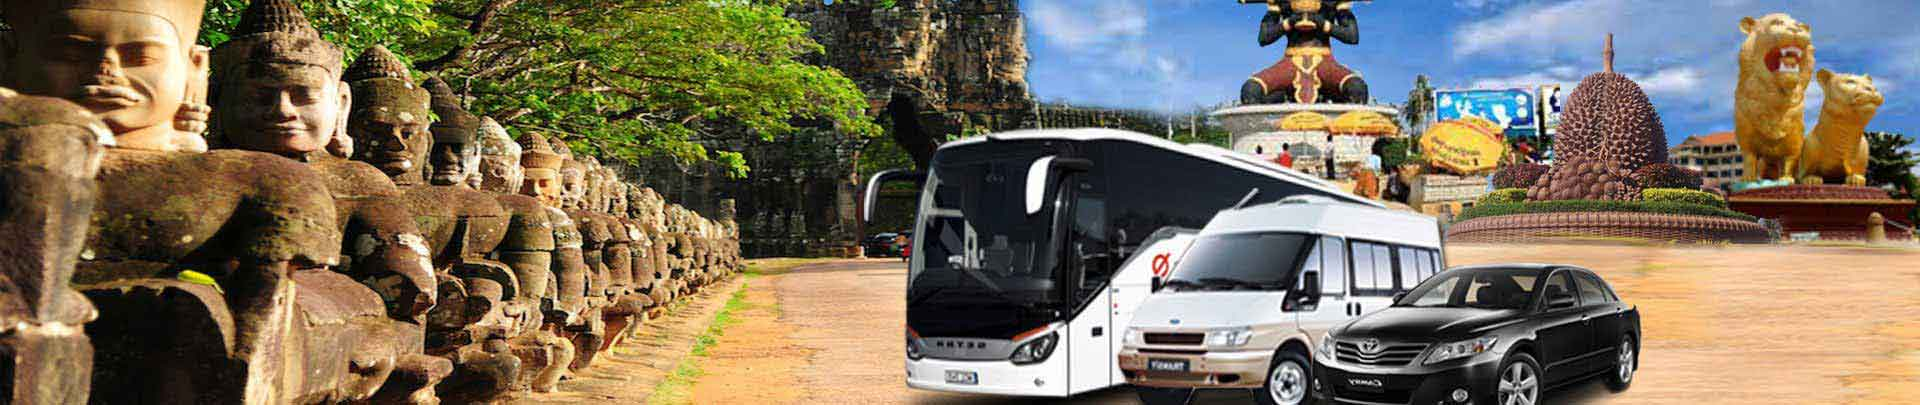 "Book Bus Tickets in Cambodia<p><a class=""btn btn-danger rounded"" href=""http://www.tourismcambodia.com/buses/"">VIEW DETAILS</a></p>"